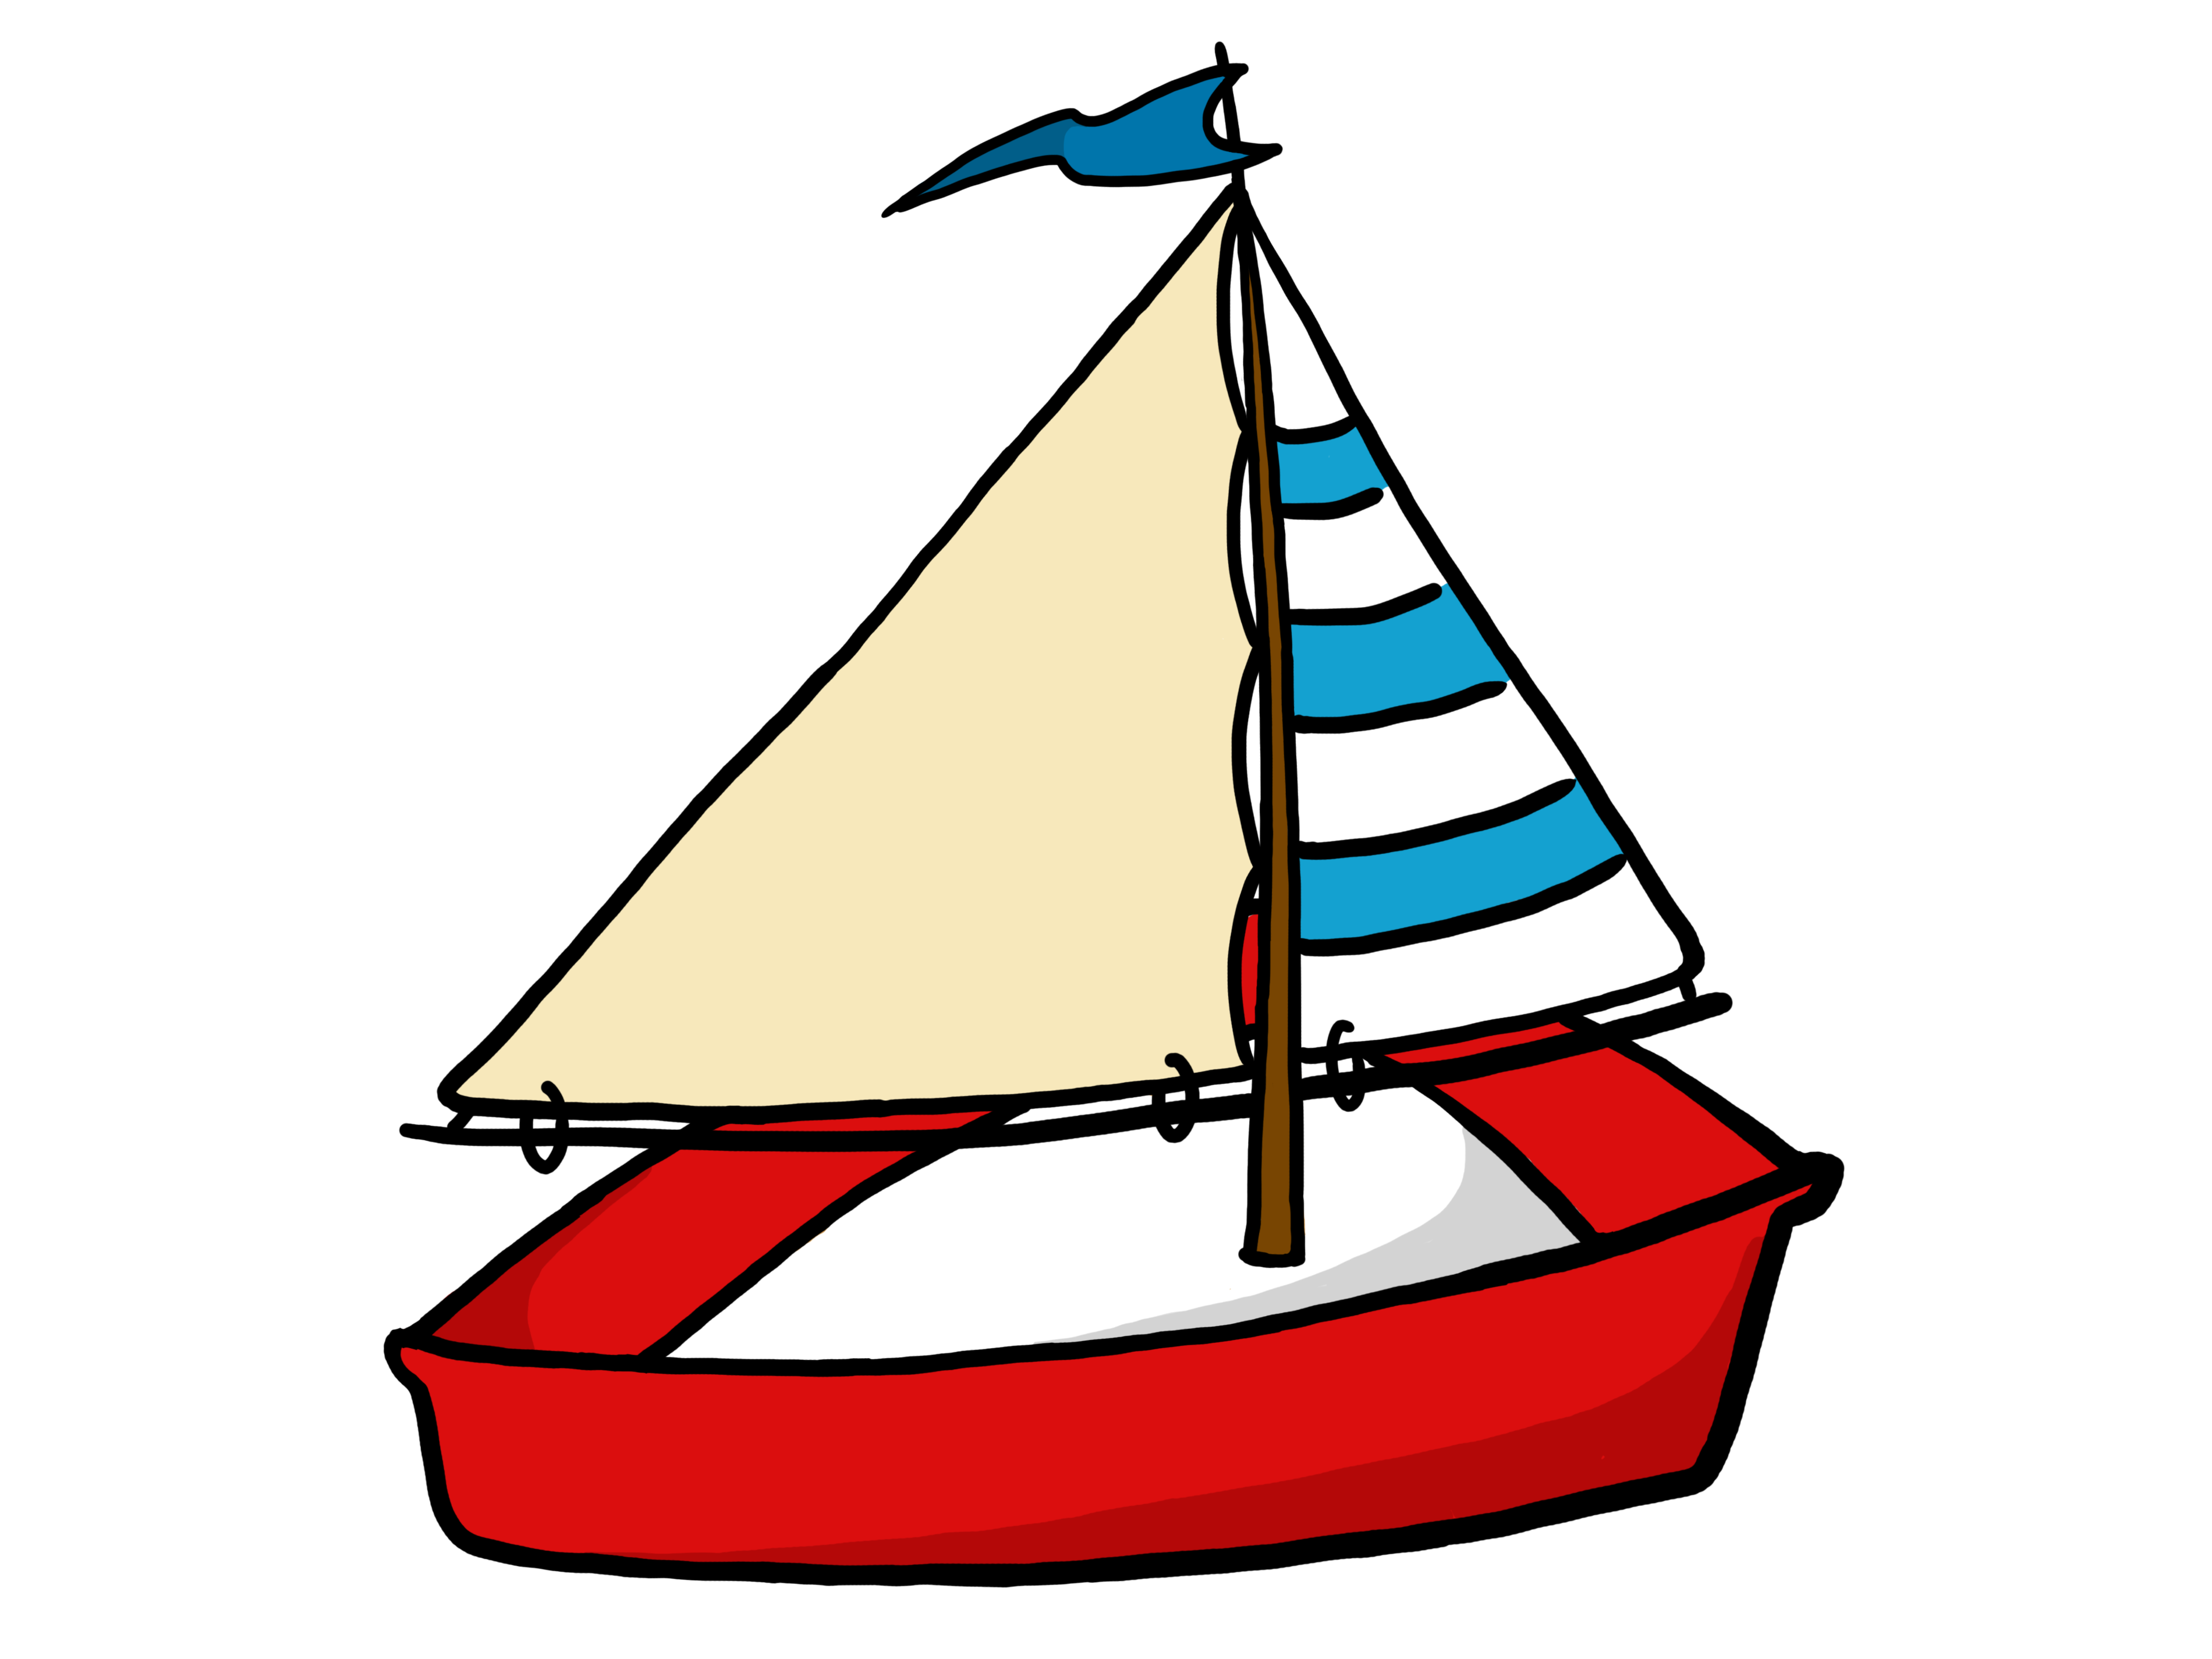 Leaf clipart boat. Ship cliparthut free this